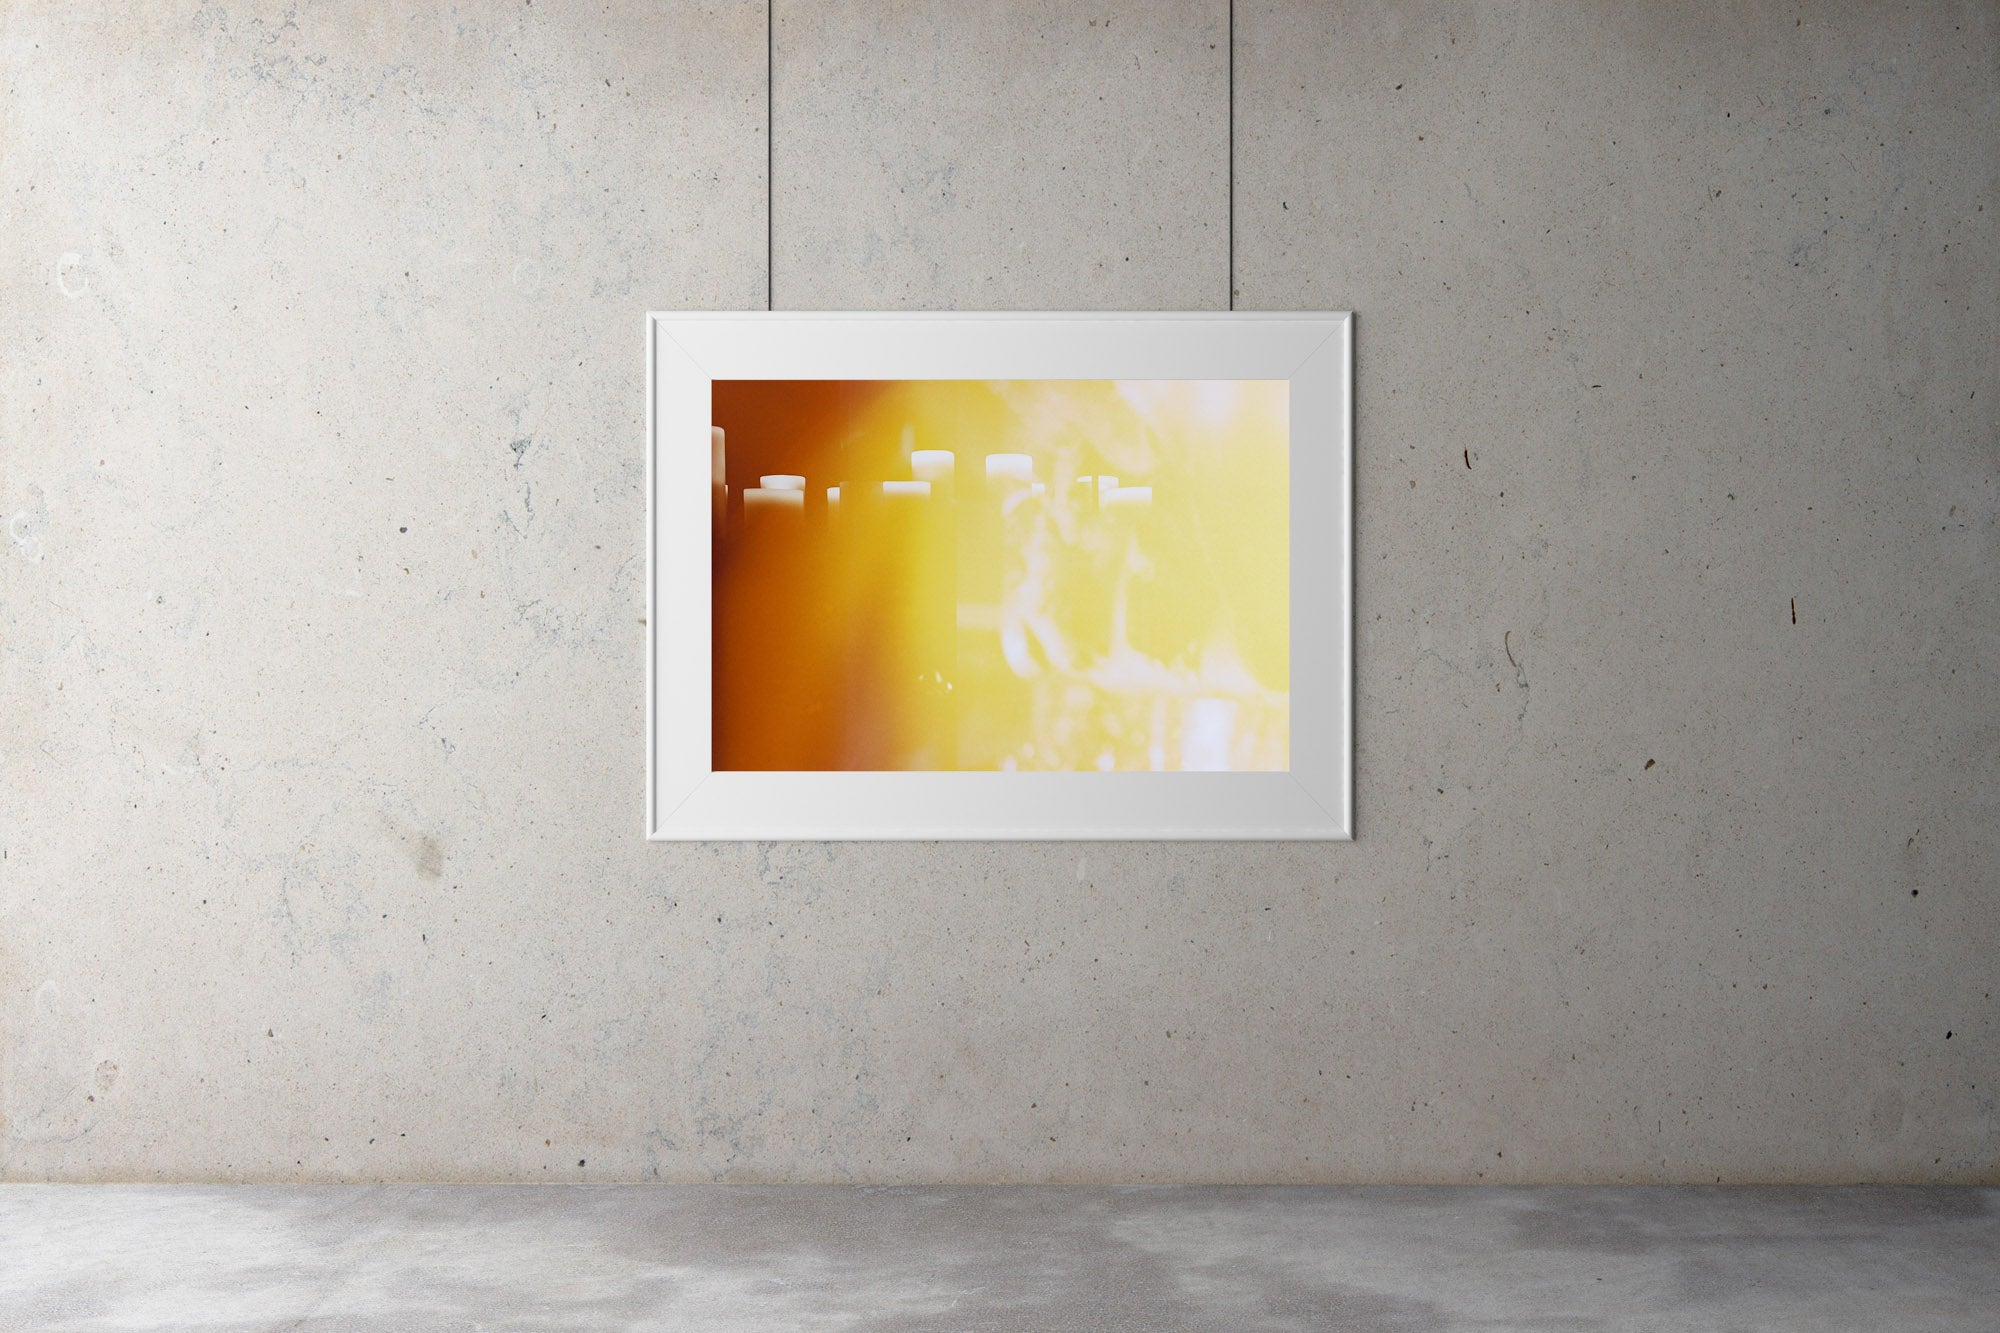 A photograph of a shelf with white candles. The candles are thick & round in shape. There is a lovely orange & yellow glow to the photo. There are white flames in the image, This is because it is a double exposure photograph. Artwork Prints wall art,  Melbourne, travel ,Australia Photographic prints, music festival, fine art, Framed artwork, Australian,  Photography, Photography for sale, Film photography, Vintage photo style,  Interior design, Film photography, Pictures,  art, film photography,